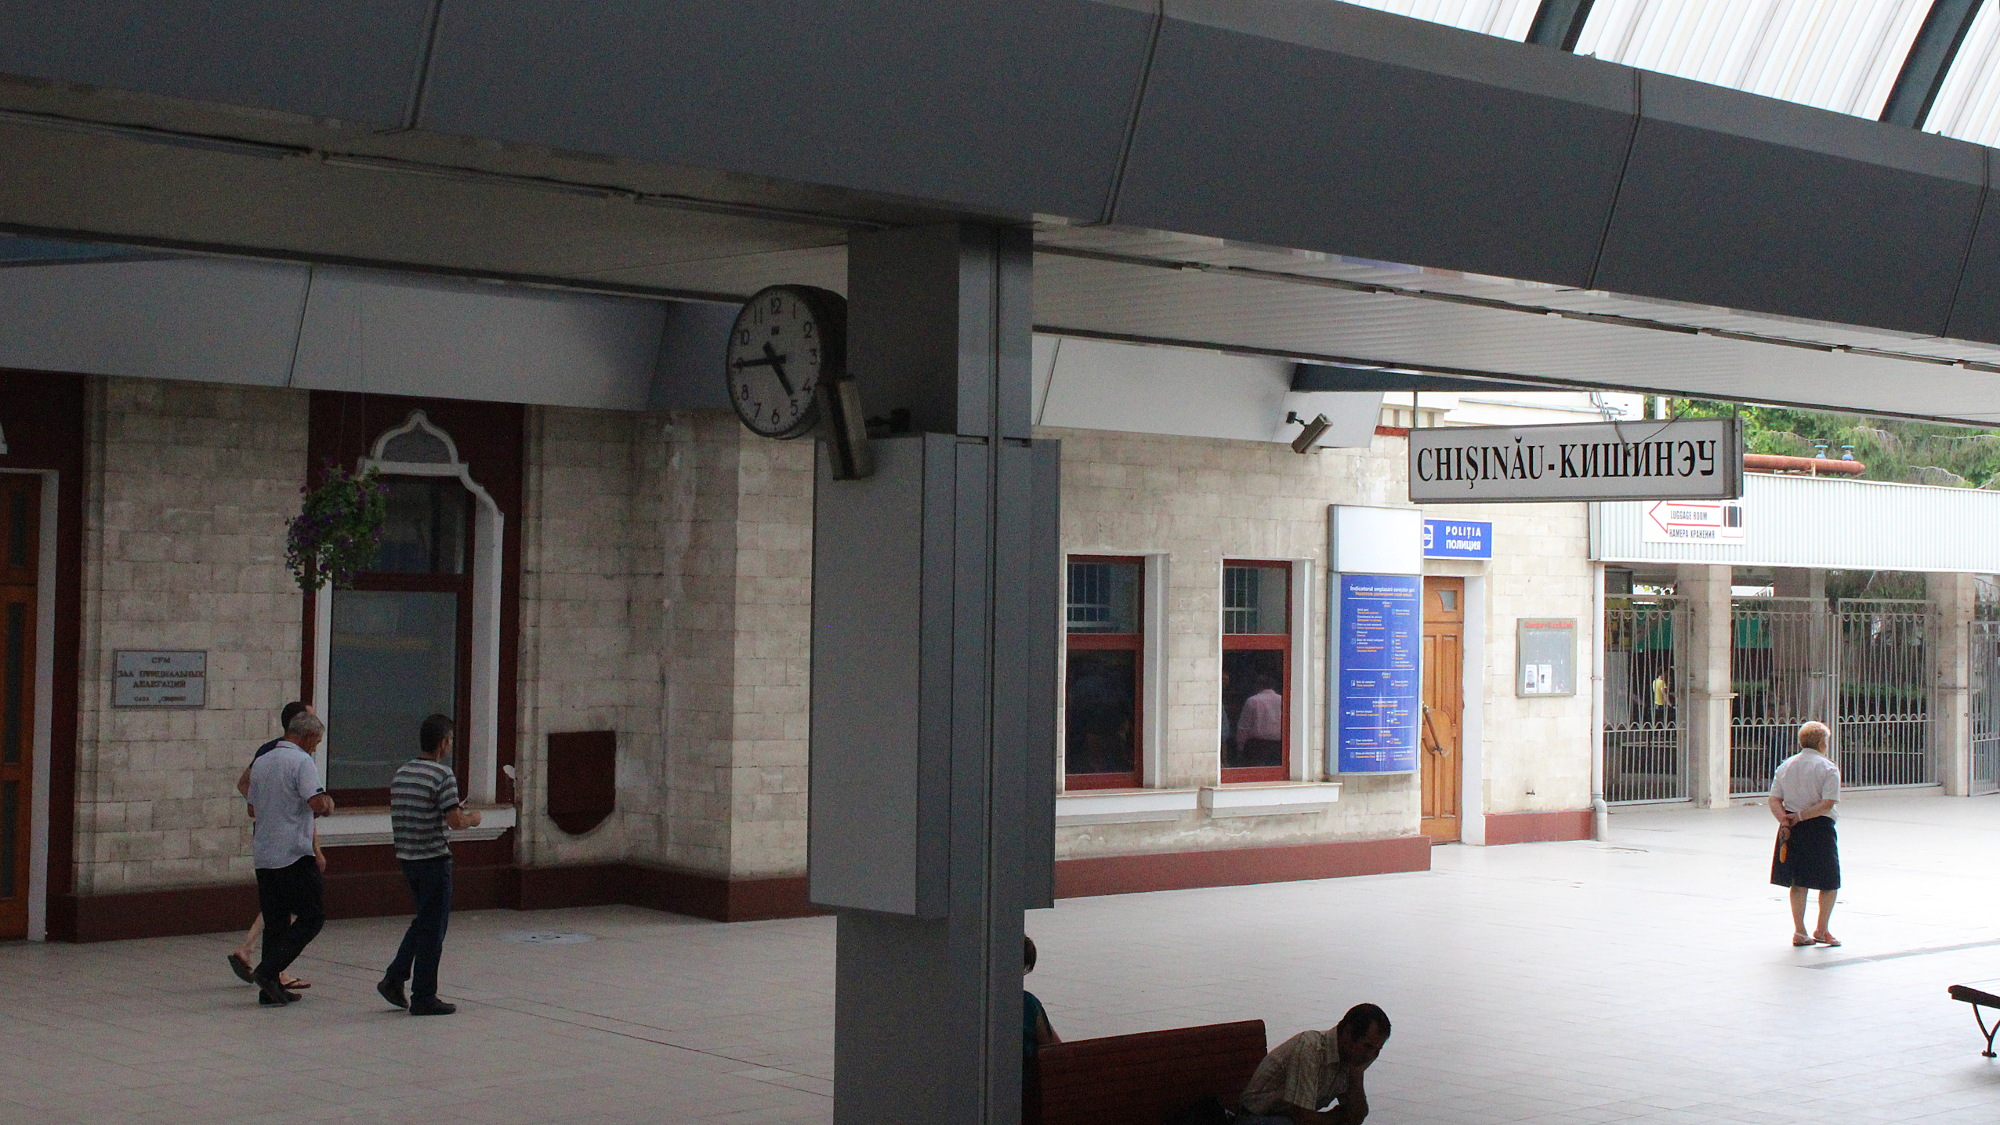 The main platform of Chișinău railway station.